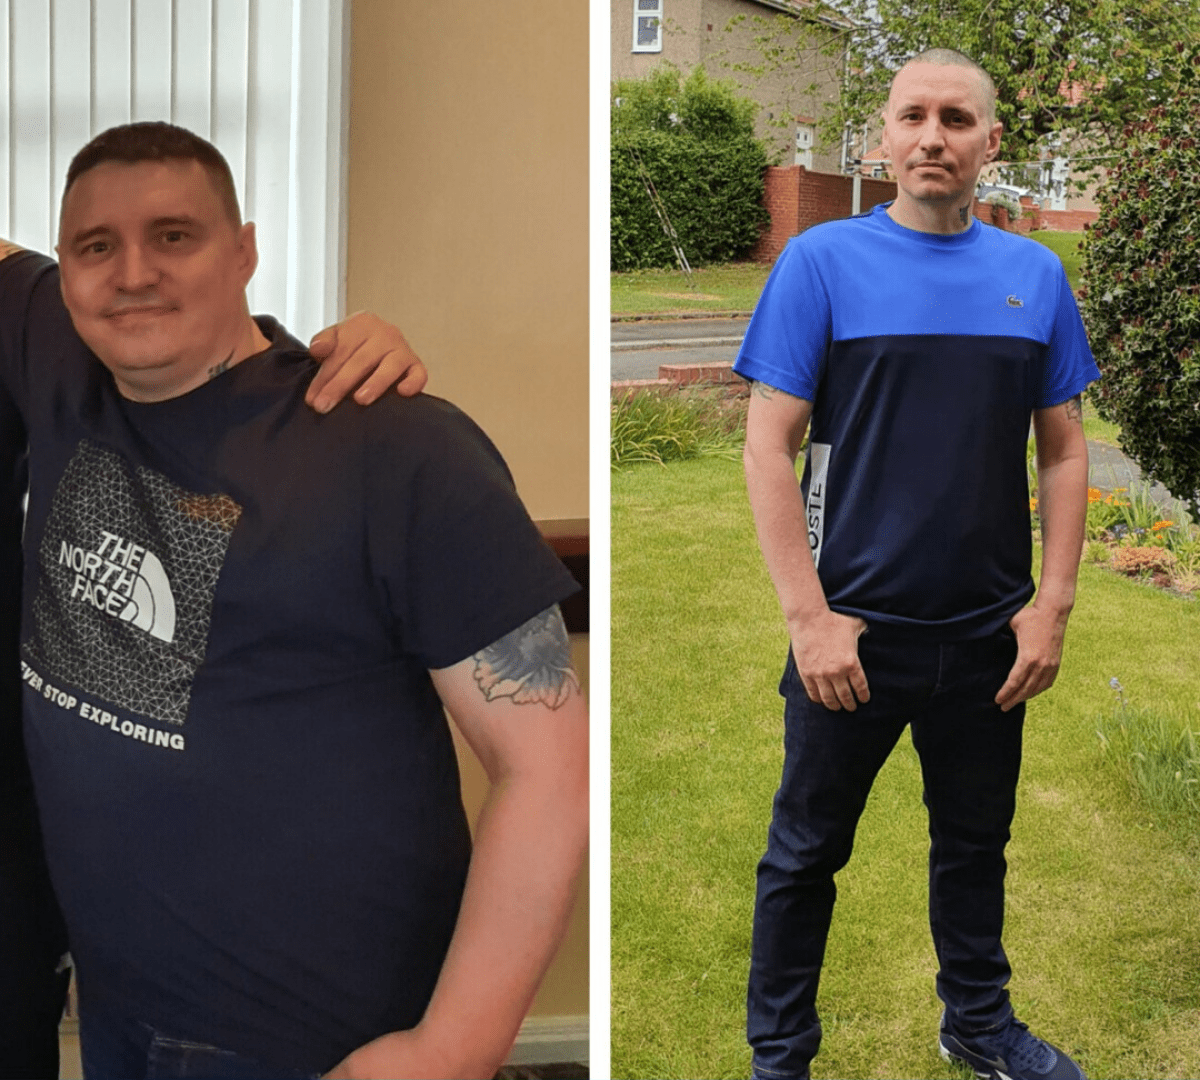 Diabetes Week: Meet John who has lost over 4 stone